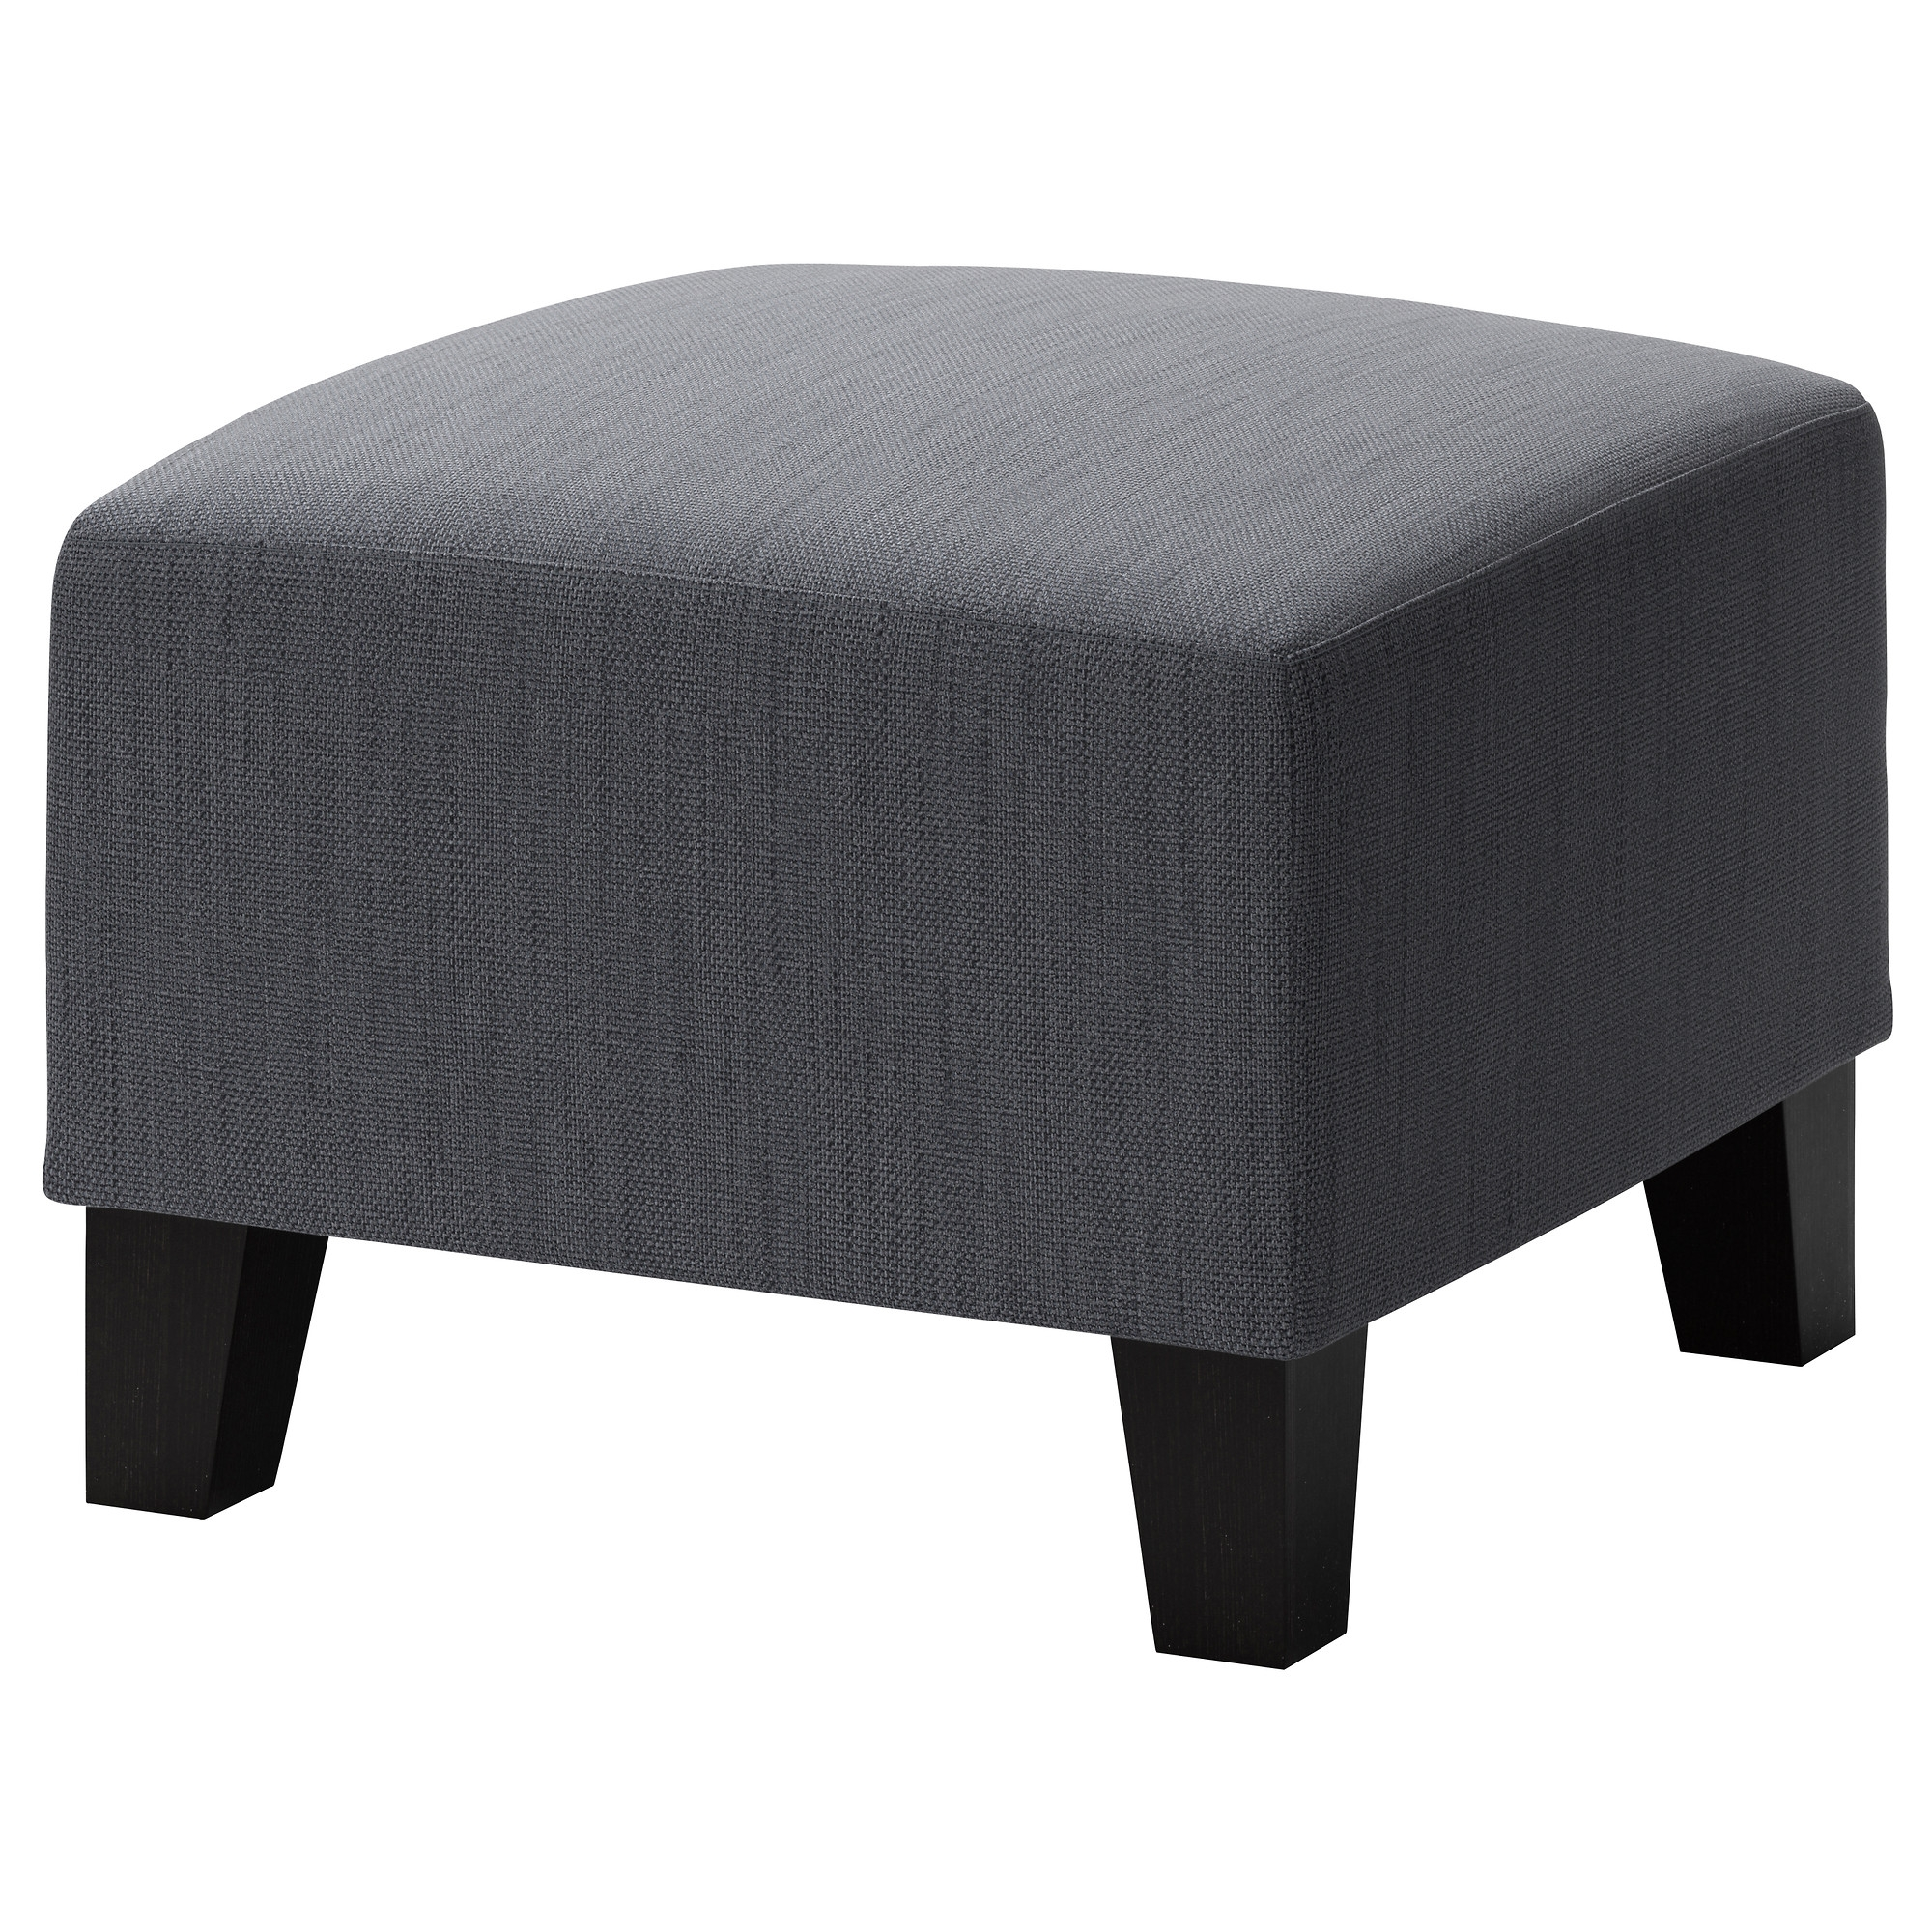 Ekens Footstool Hensta Grey Ikea Regarding Ikea Footstools And Pouffes (Image 2 of 15)